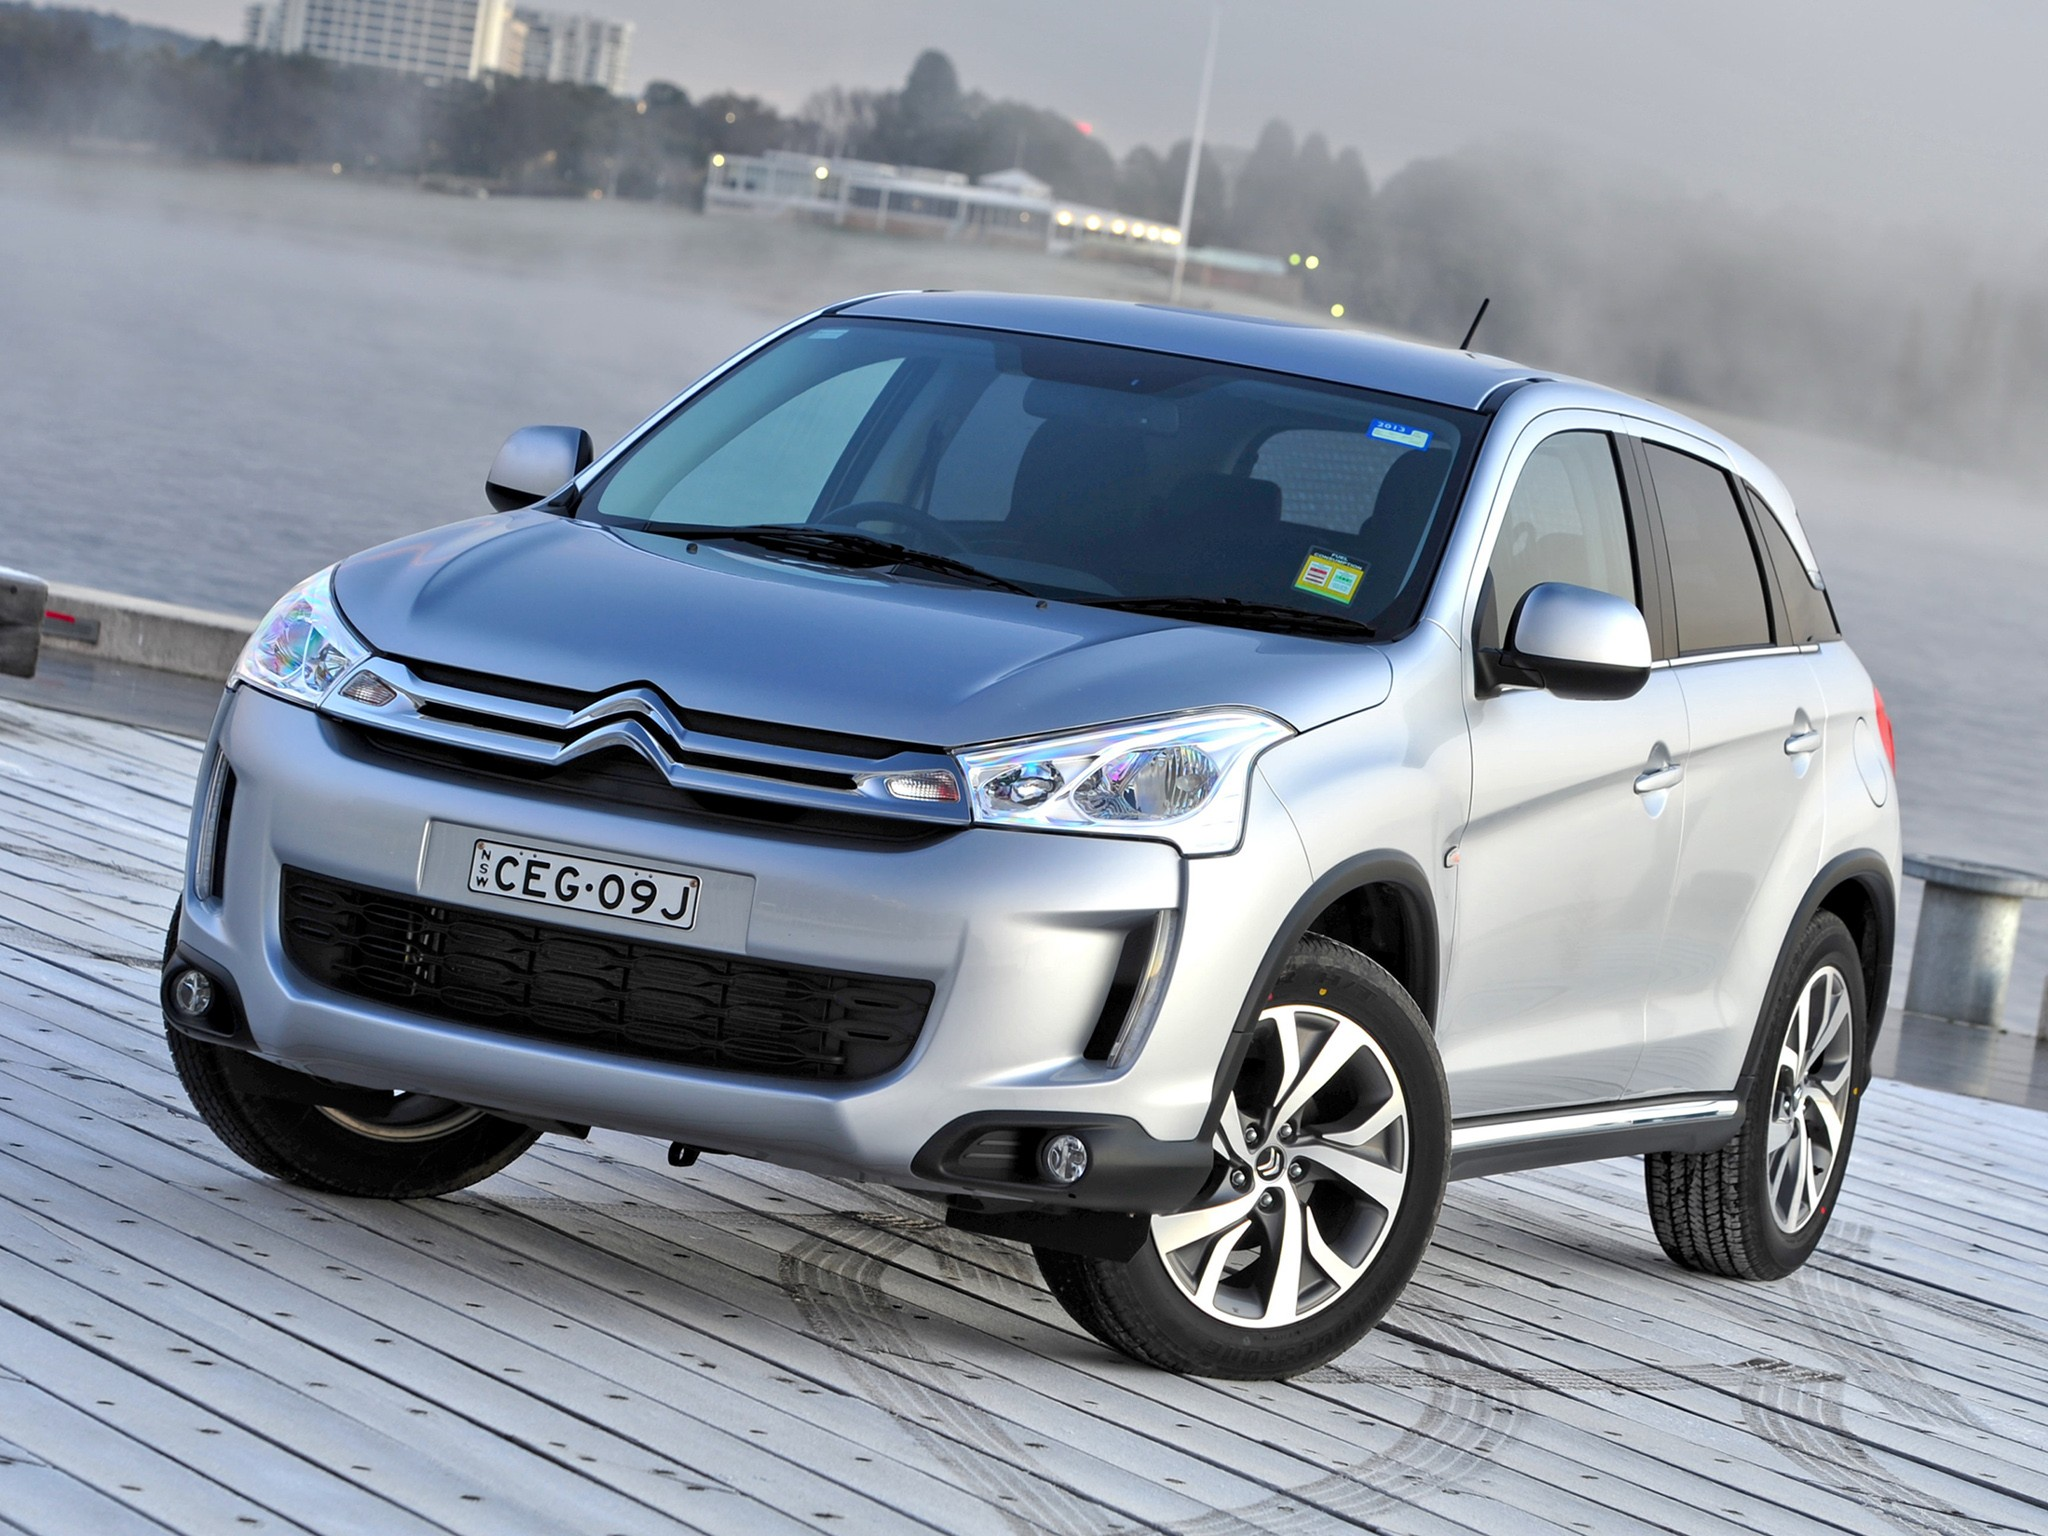 citroen c4 aircross 2012 2013 2014 2015 2016 2017 autoevolution. Black Bedroom Furniture Sets. Home Design Ideas